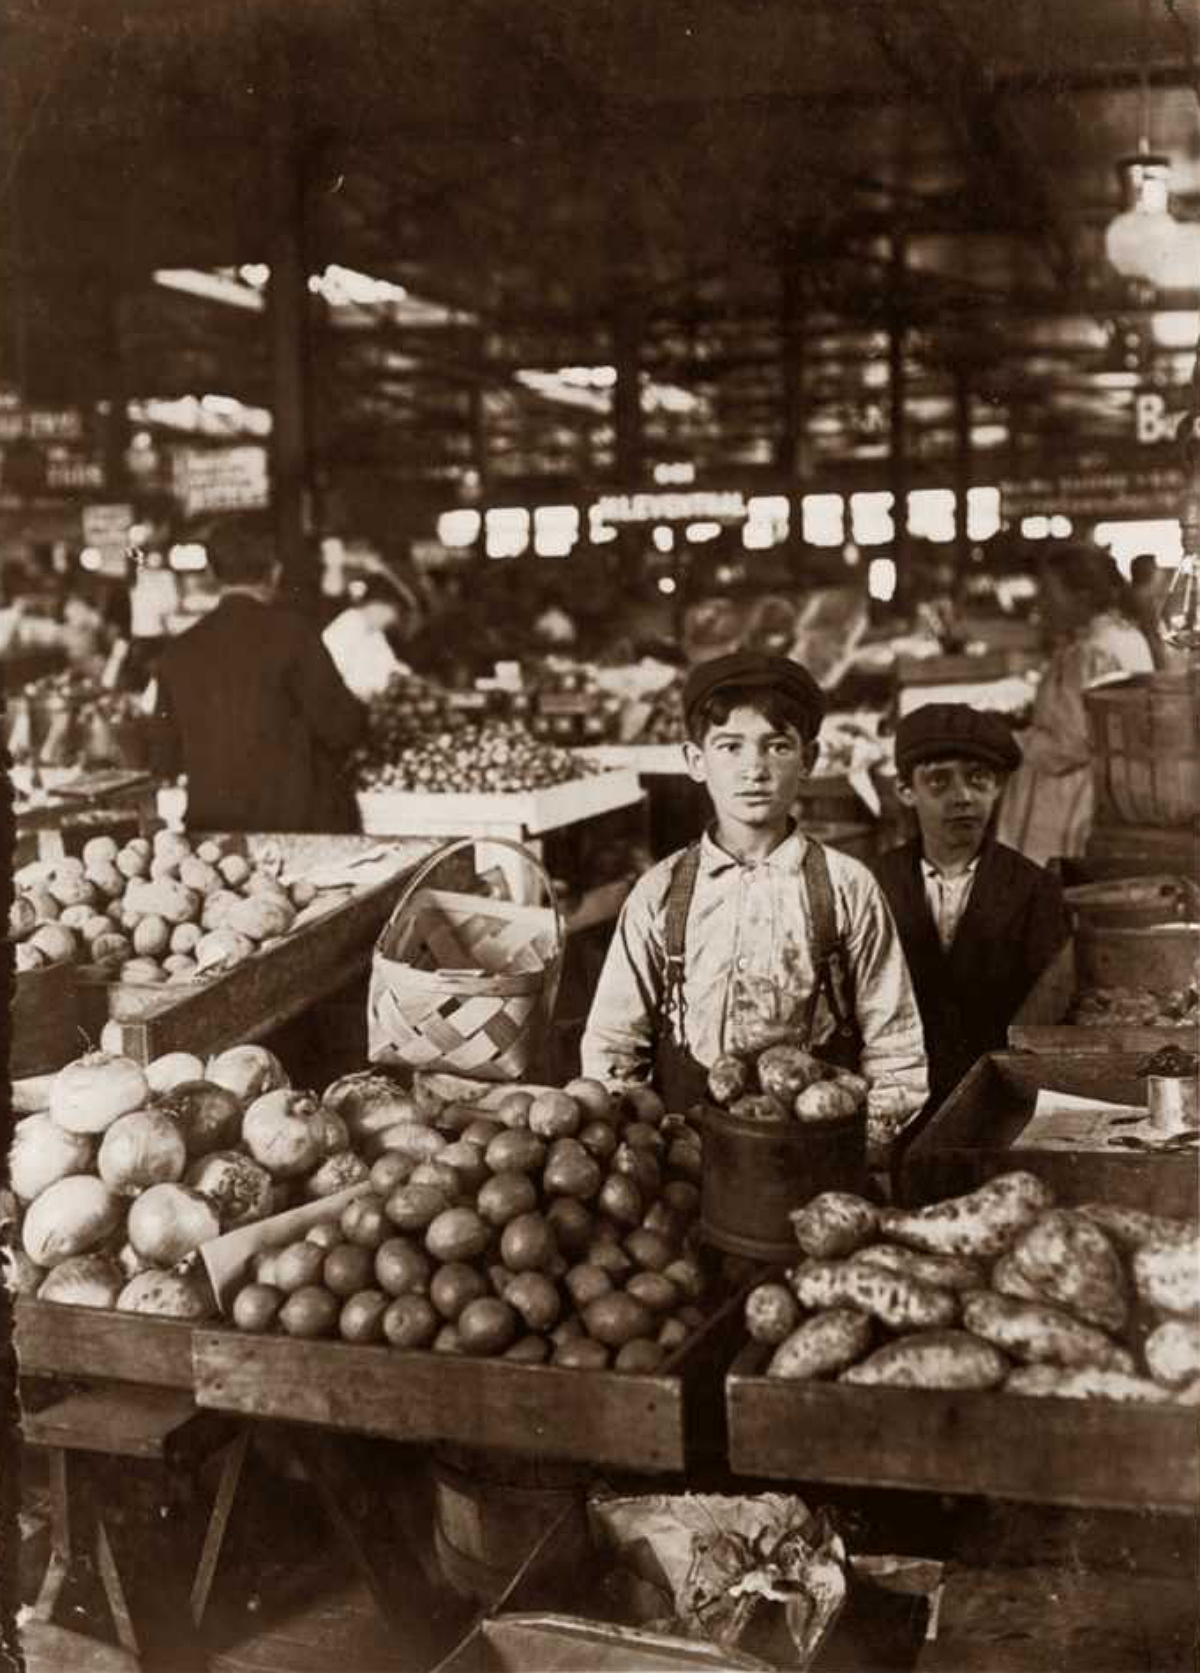 young boys working in a grocery at the turn of the 20th century